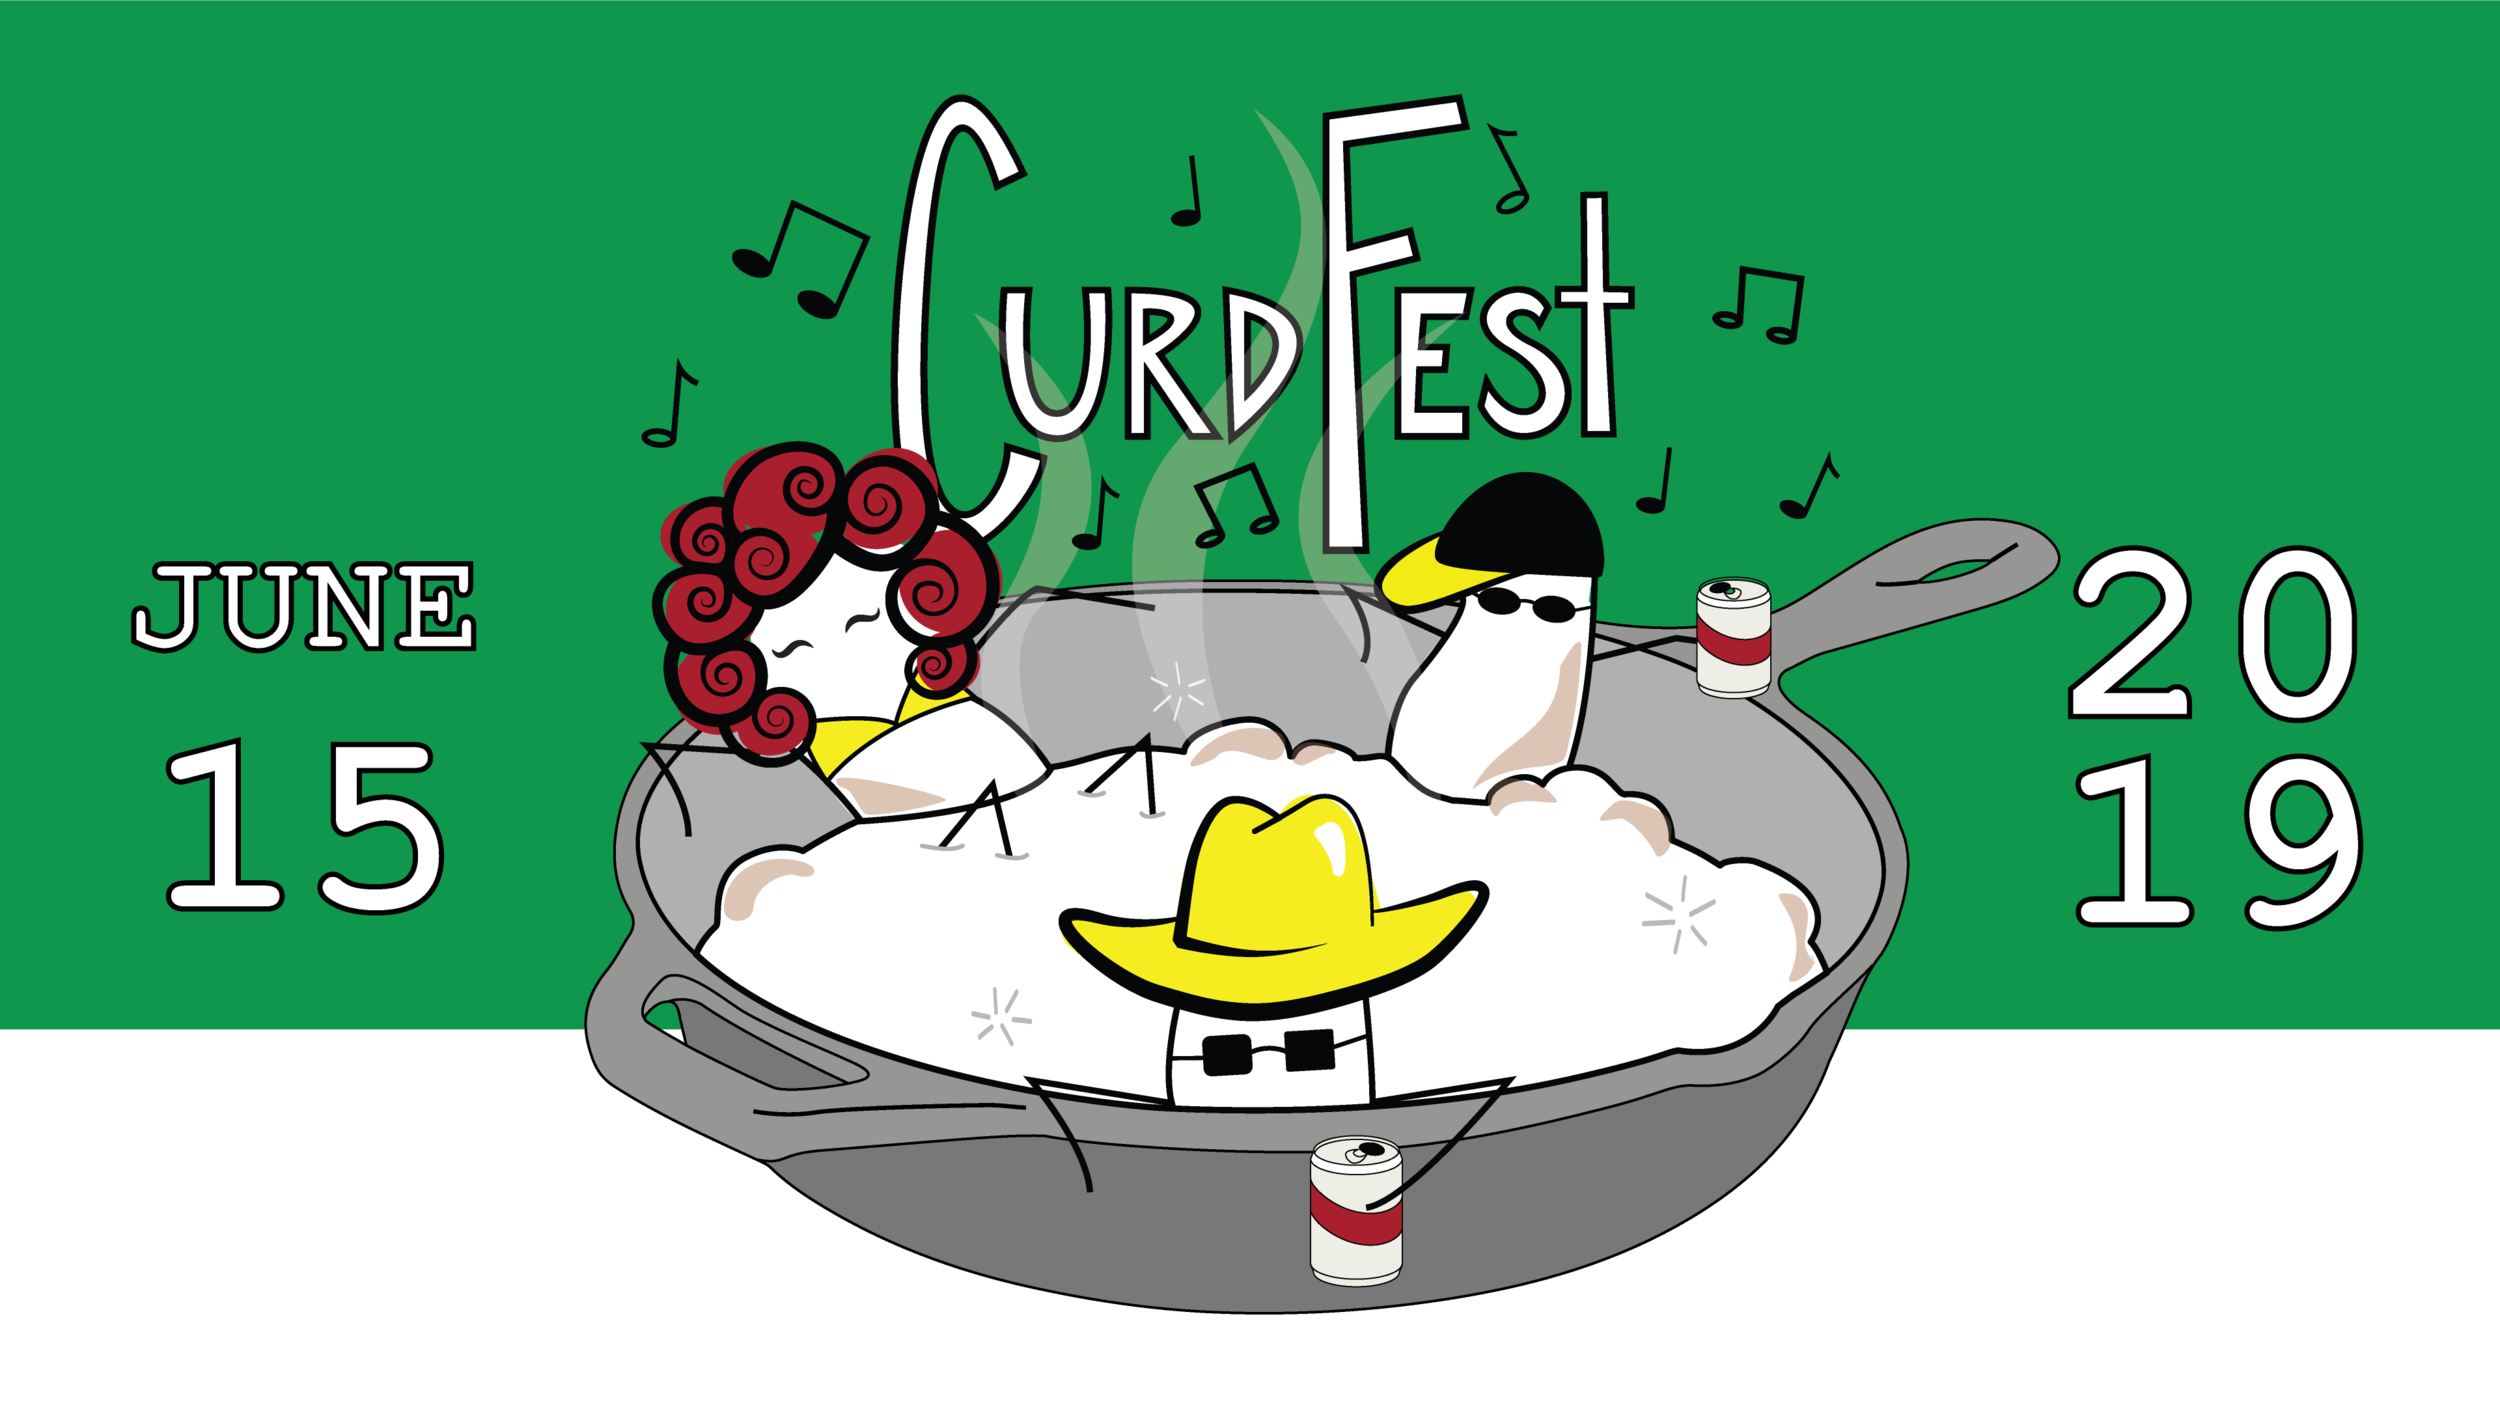 We will be hosting our second annual Curd Fest this summer on Saturday, June 15th from 11-4 pm, where we will be celebrating all things cheese curds! We'll be serving curds in all of their glorious forms, including fresh, fried, squeaky, melty, flavored, and on-a-stick.  *Tickets sold at event. Entry price is $5 for ages 12+. Free entry for those under 12-years-old. Admission includes live music, vendor samples and self-guided farm tours.    Event will be held rain or shine!    We also have several amazing guests joining us for entertainment and food sampling. Here are our confirmed vendors!  Live music by Jack Winders  Live music by Bernie King and the Guilty Pleasures  Beer sampling by Third Street Brewhouse  Lucky's Popcorn Dressing  Wild Wille's Sandwich Shack  Minnewaska House  Spruce Soda  Milk & Honey Ciders  Ferndale Market  The Starkeller Brewery  The Weekend Project: Feeding Young Minds  Otte's Old Fashion Kettle Korn        If you're traveling a long distance and need a place to spend the night, we recommend the AmericInn in Sauk Centre, located just 20 minutes from Redhead Creamery.     *Tickets sold at event. Entry price is $5 for ages 12+. Free entry for those under 12-years-old.